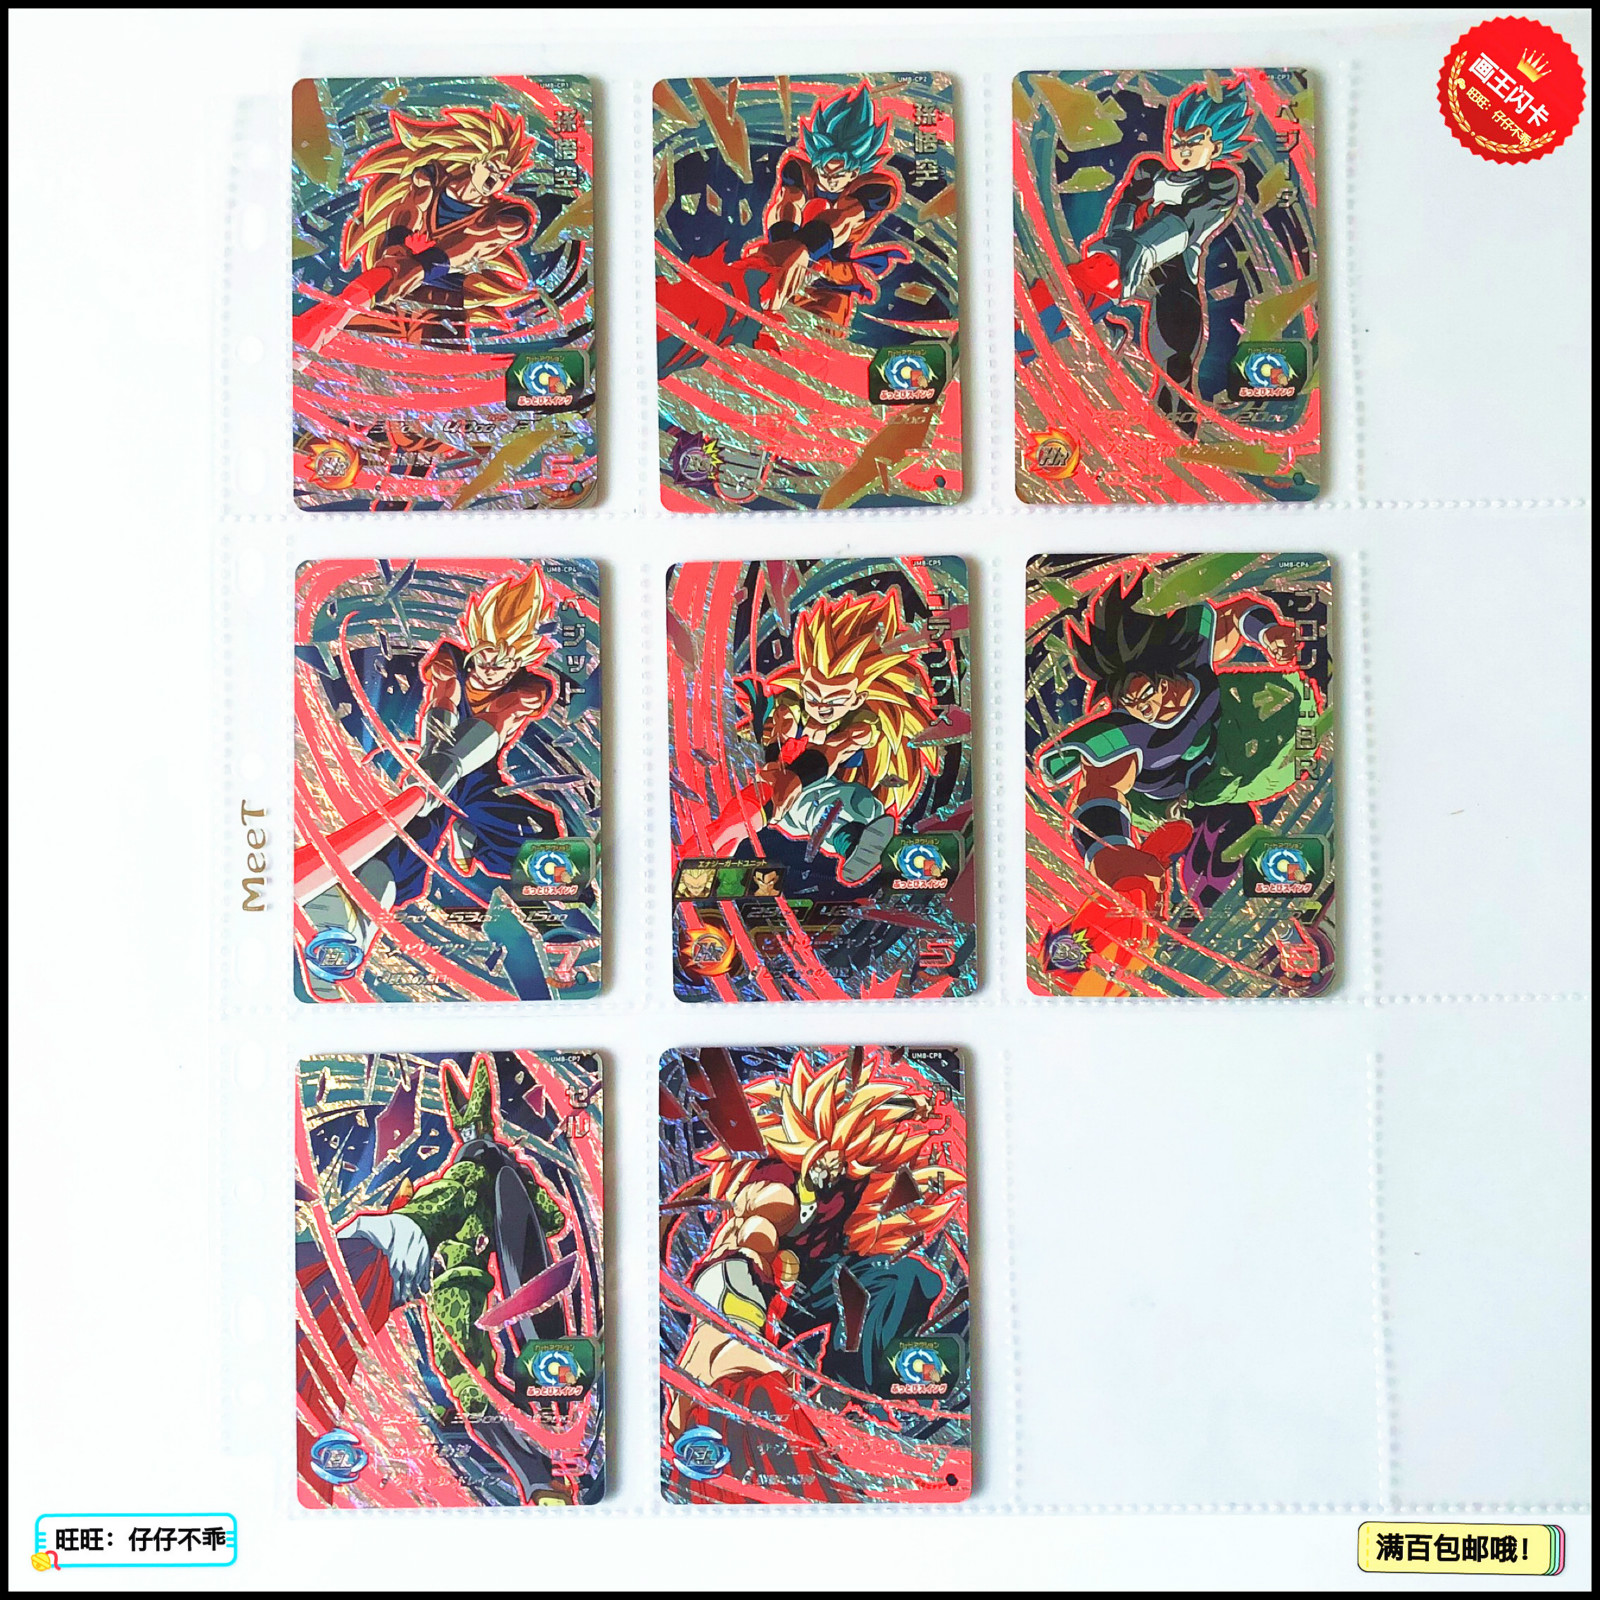 Japan Original Dragon Ball Hero Card UM8 Goku Broli Toys Hobbies Collectibles Game Collection Anime Cards